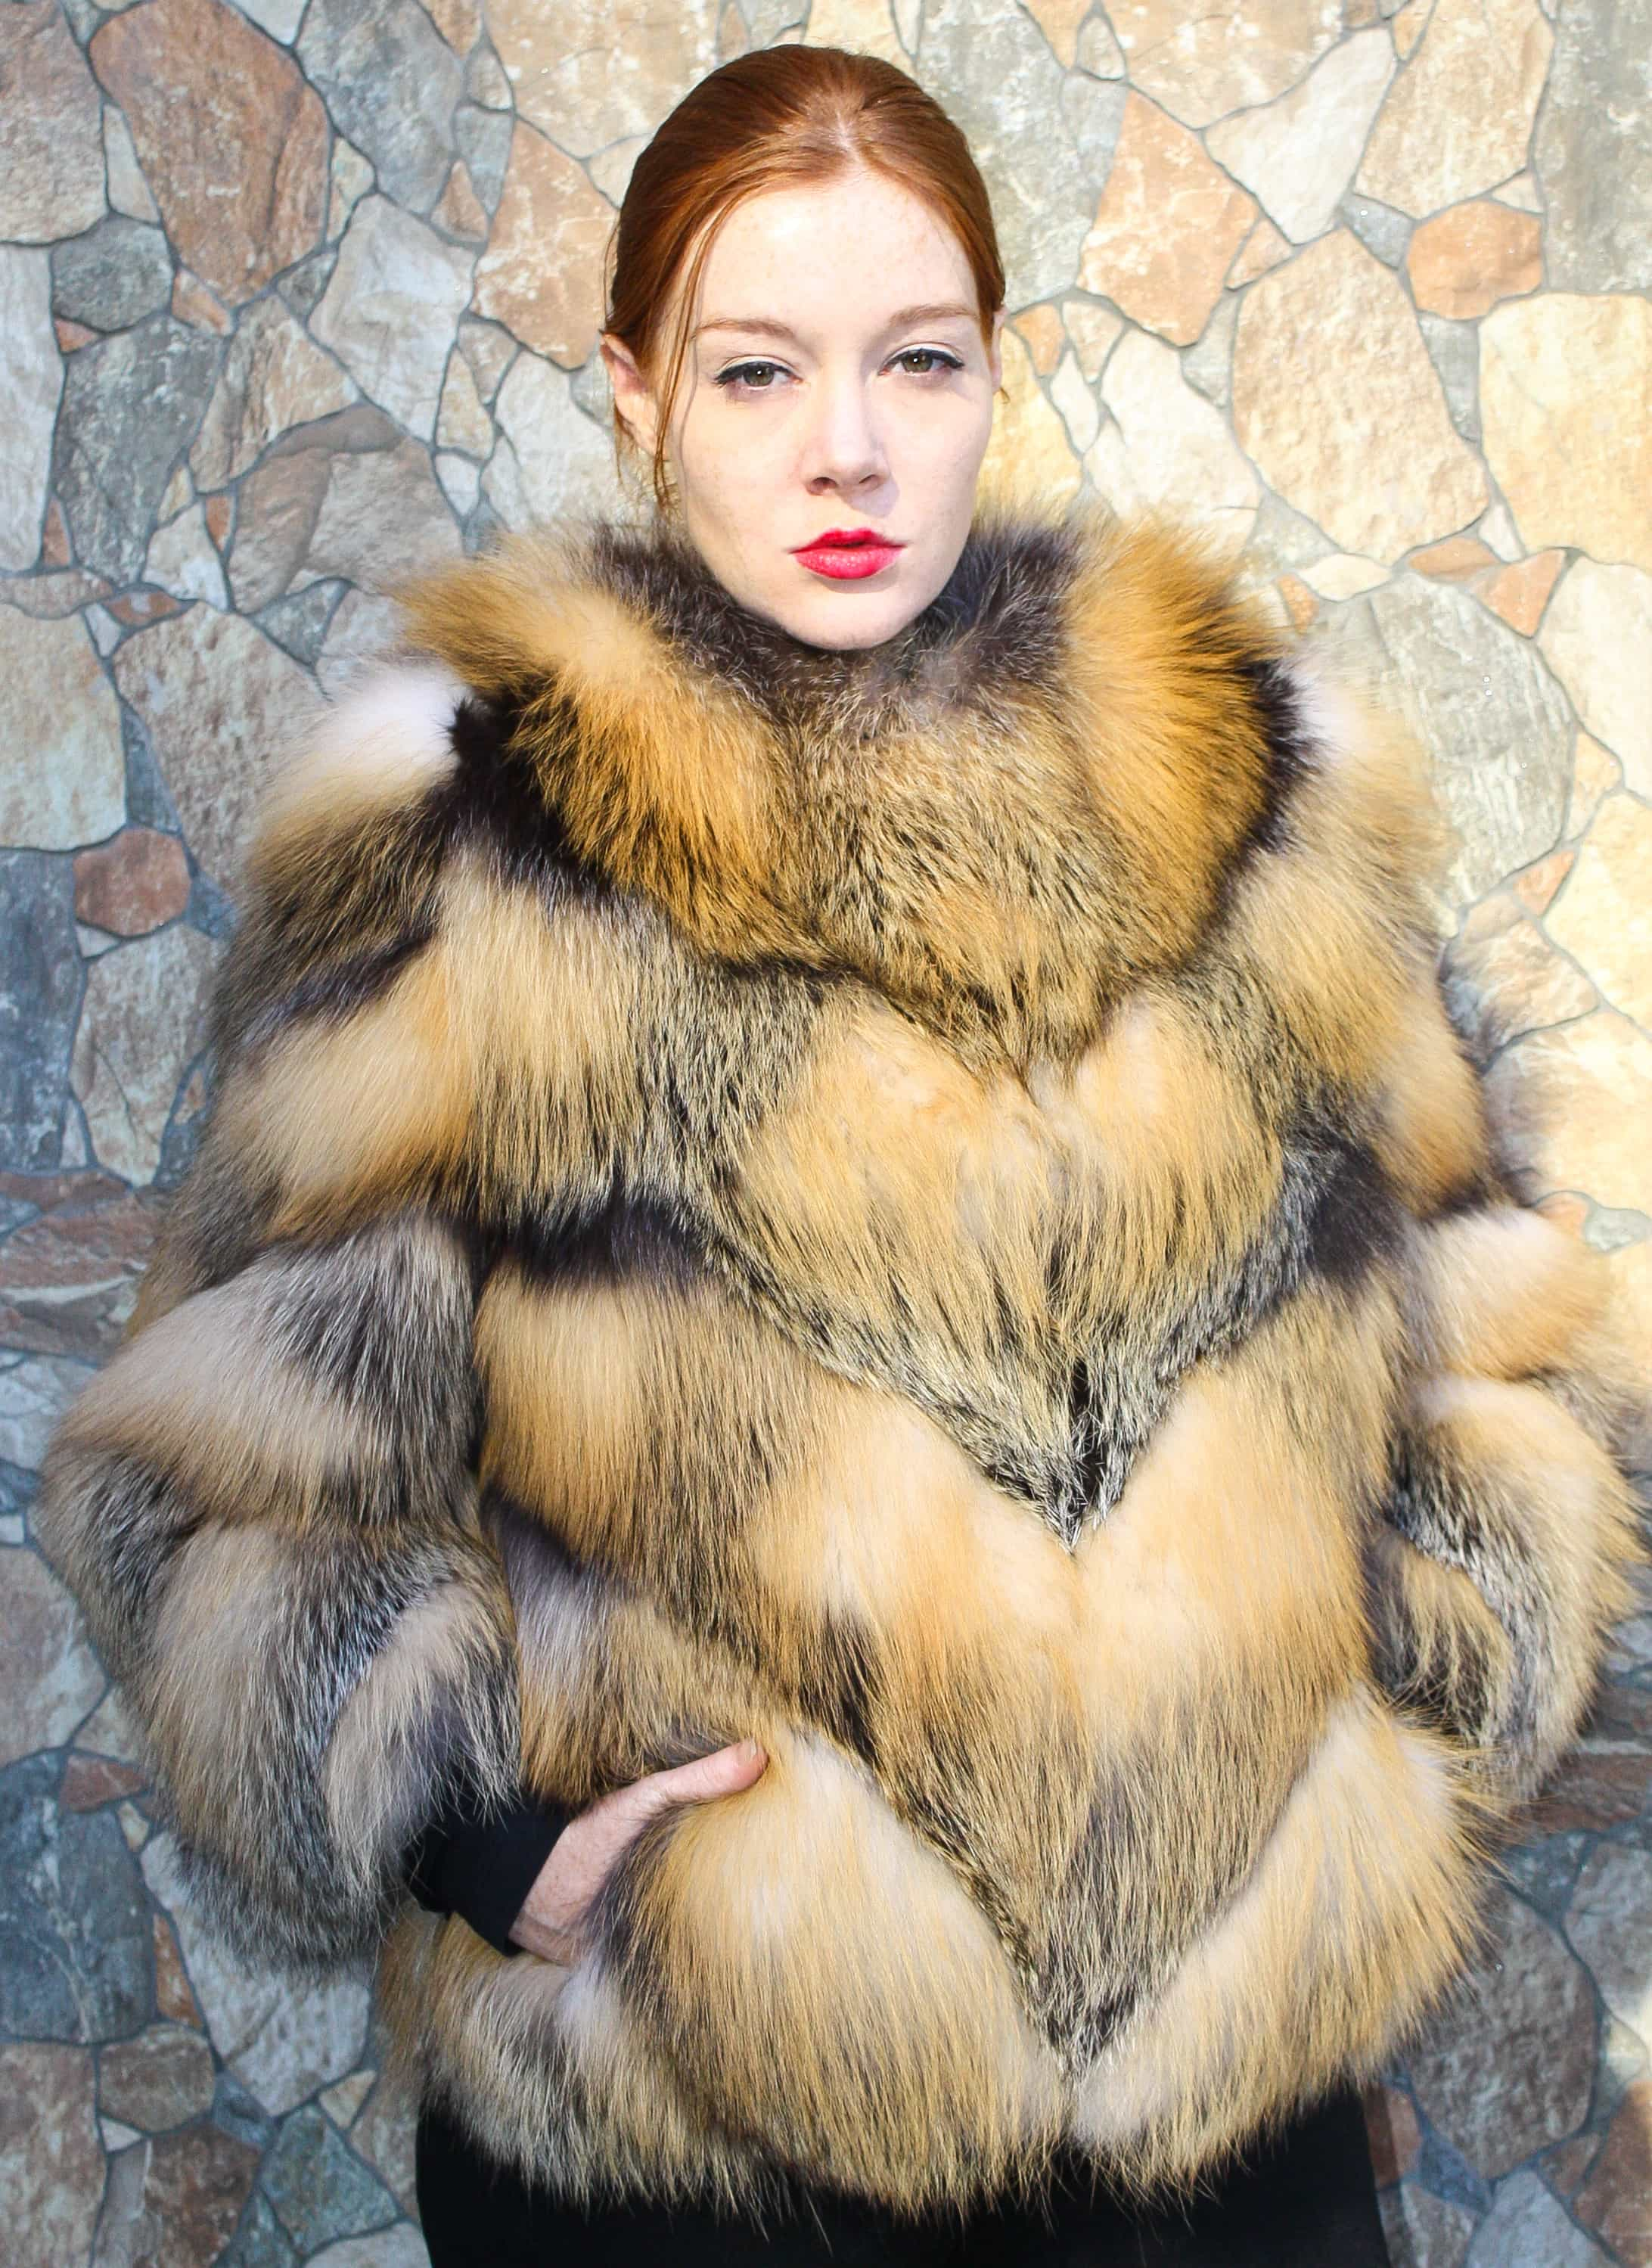 Freezing Temperatures in Chicago Spark Dramatic Rise in Online Fur Sales